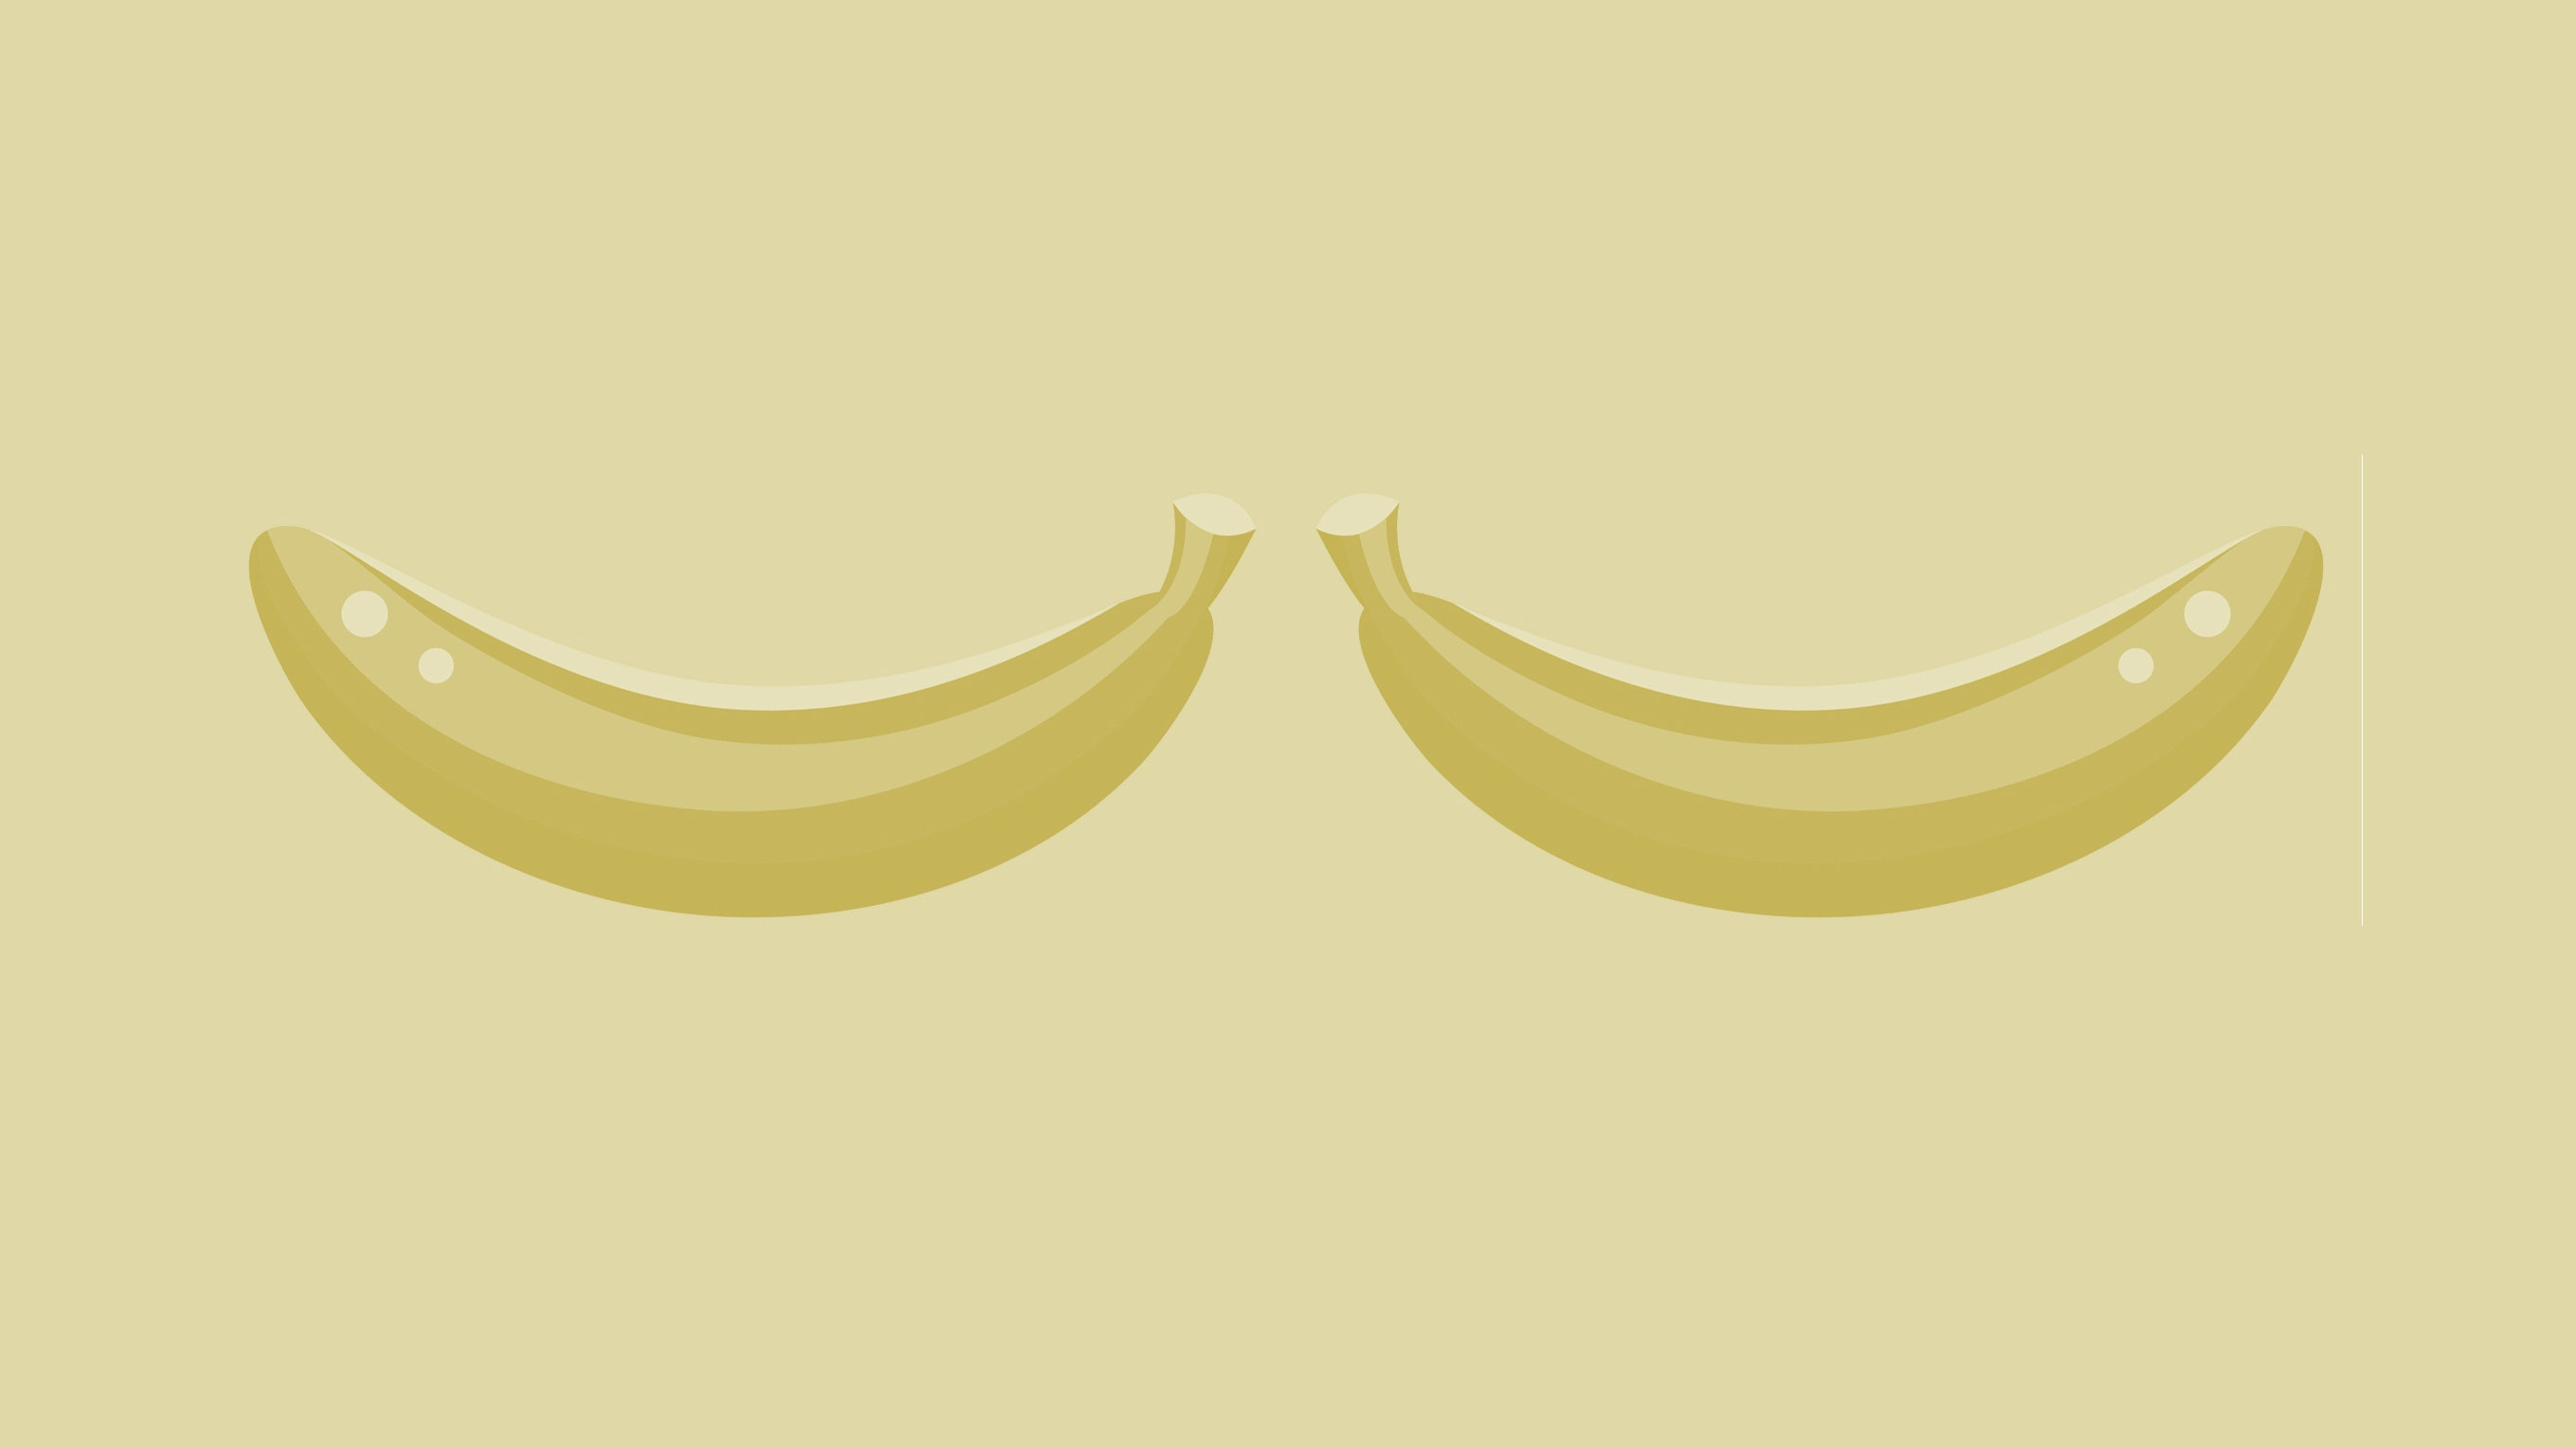 You Asked, We Answered: What Is a Banana Roll?